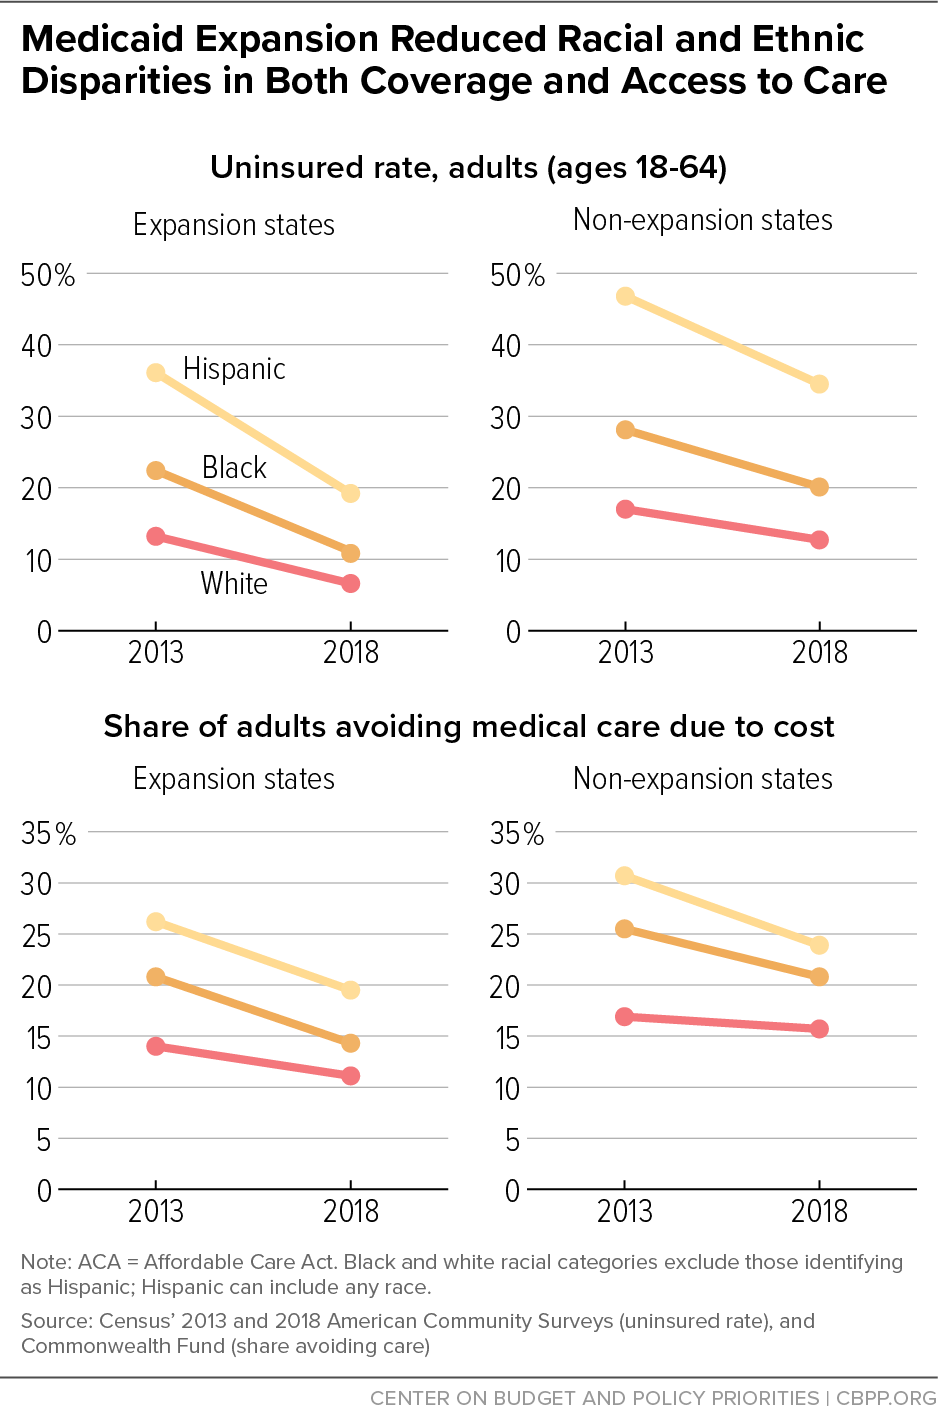 Medicaid Expansion Reduced Racial and Ethnic Disparities in Both Coverage and Access to Care